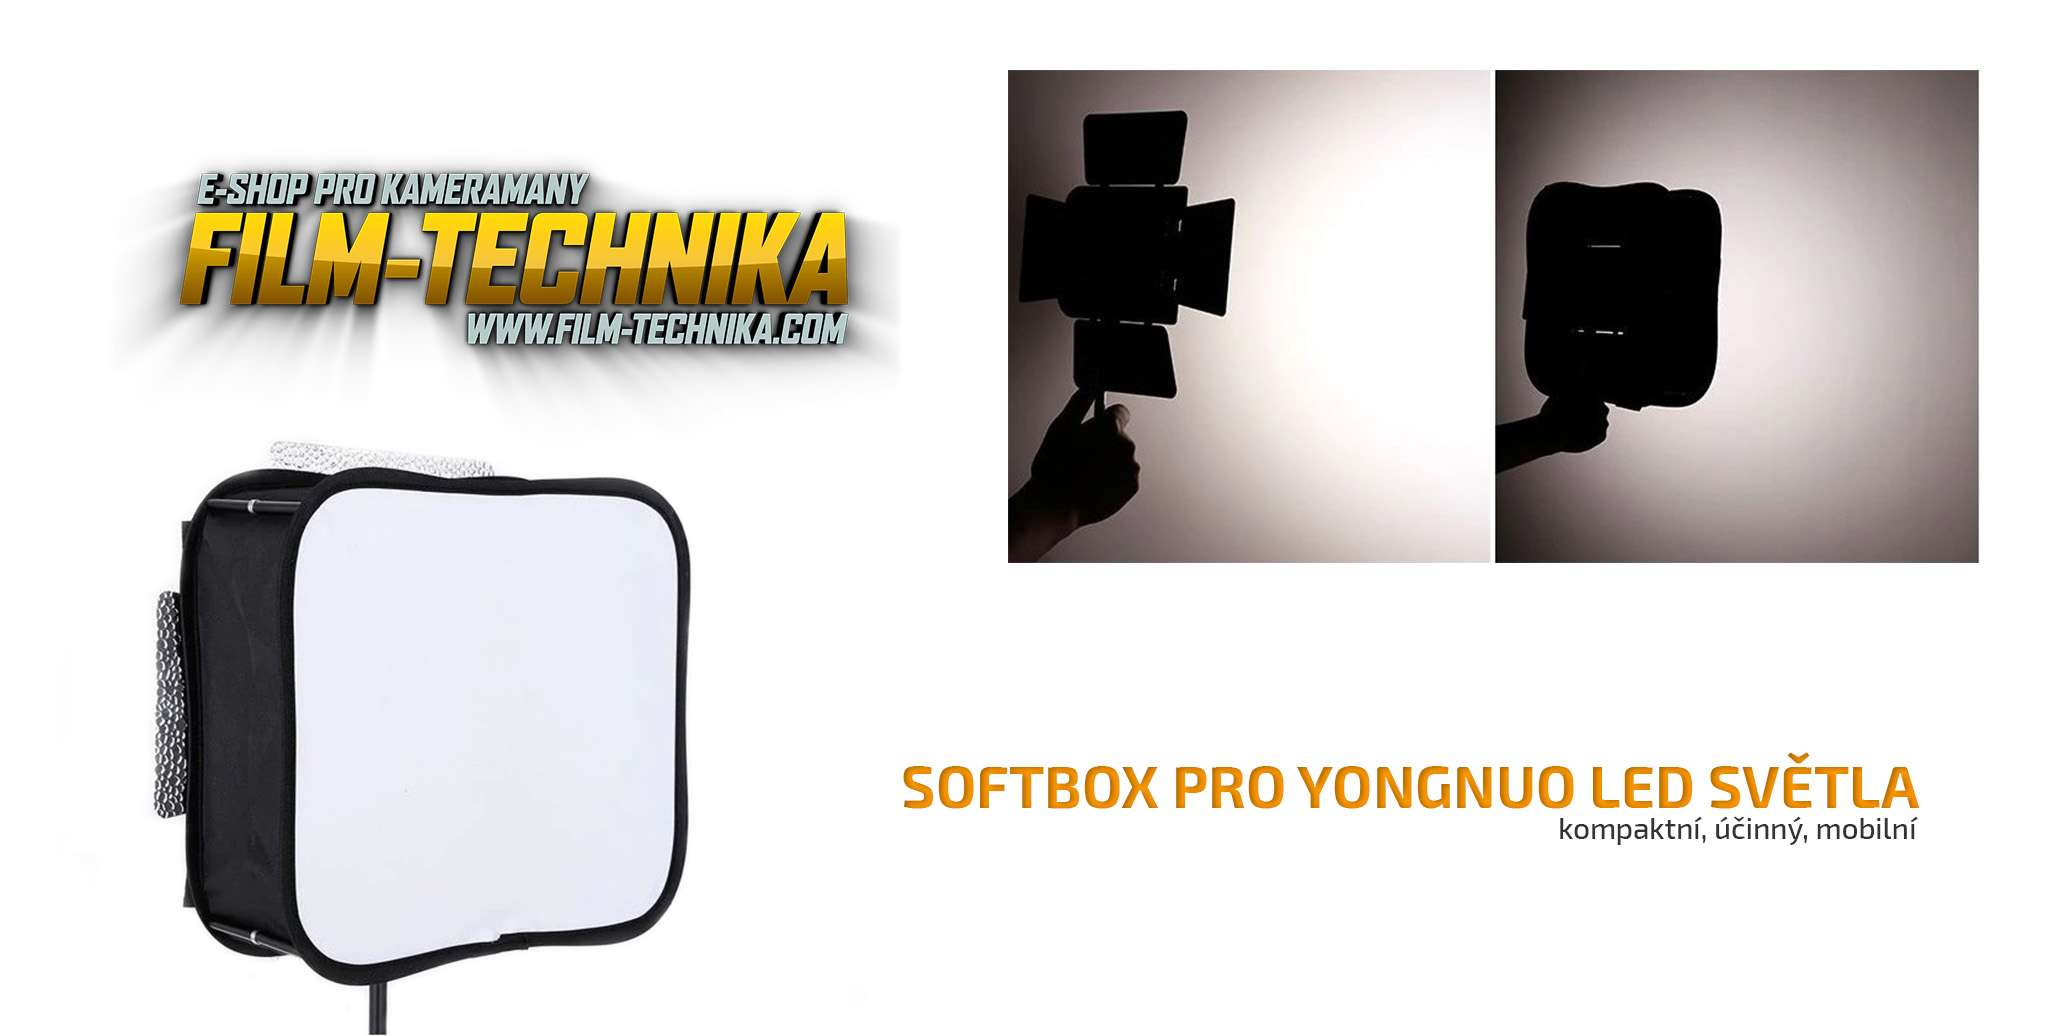 film-technika-softbox-pro-led-yn-01-intext